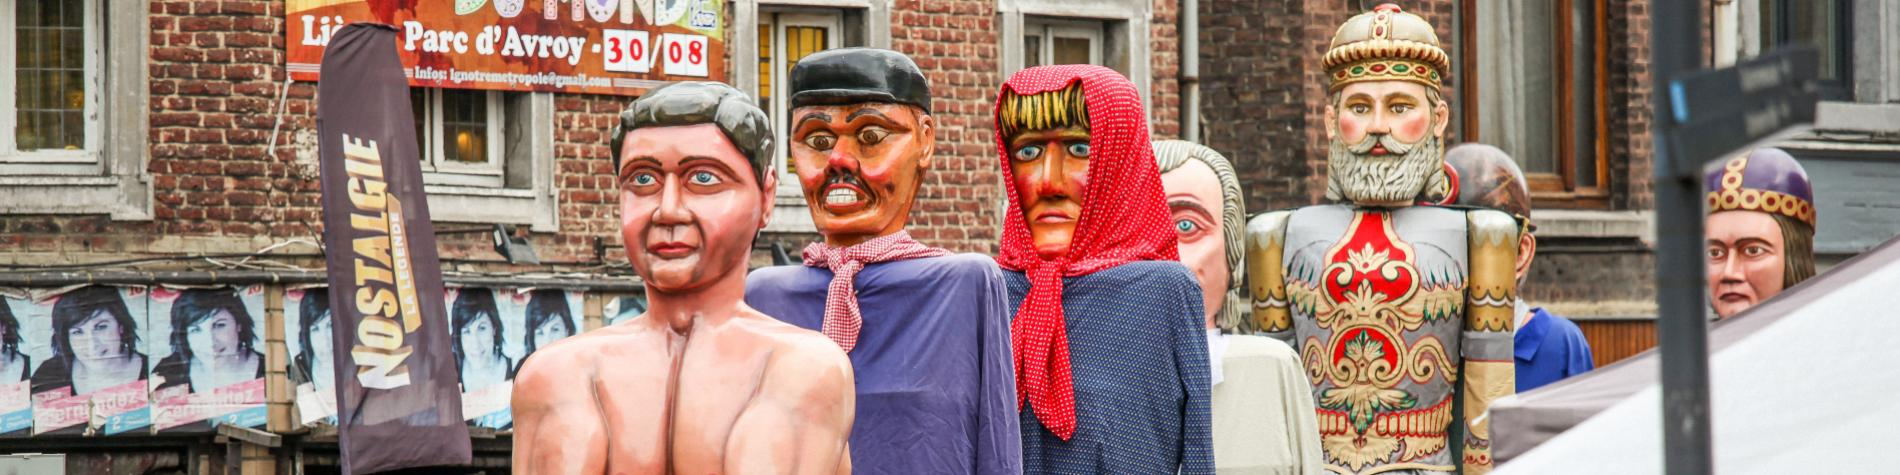 Meet the giants of the province of Liège at the 15th August Festival